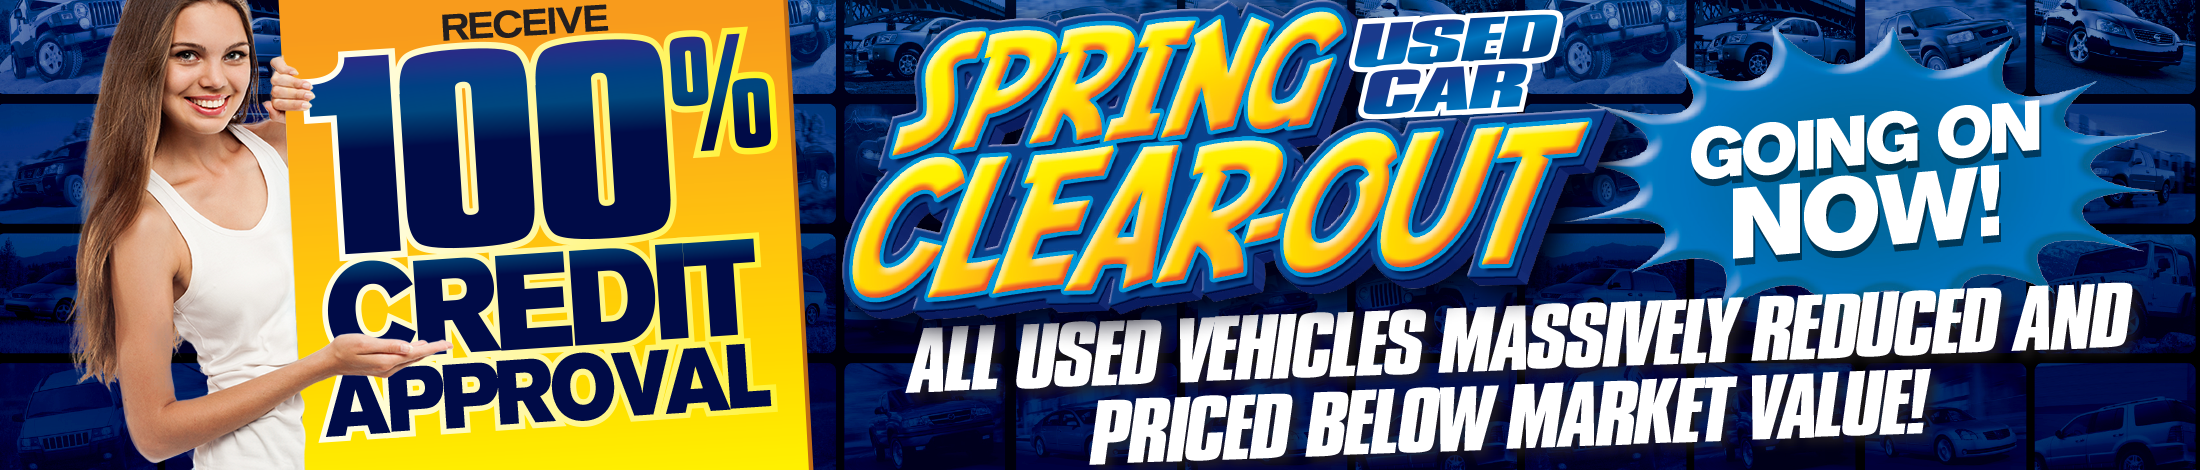 Spring clear out 2018